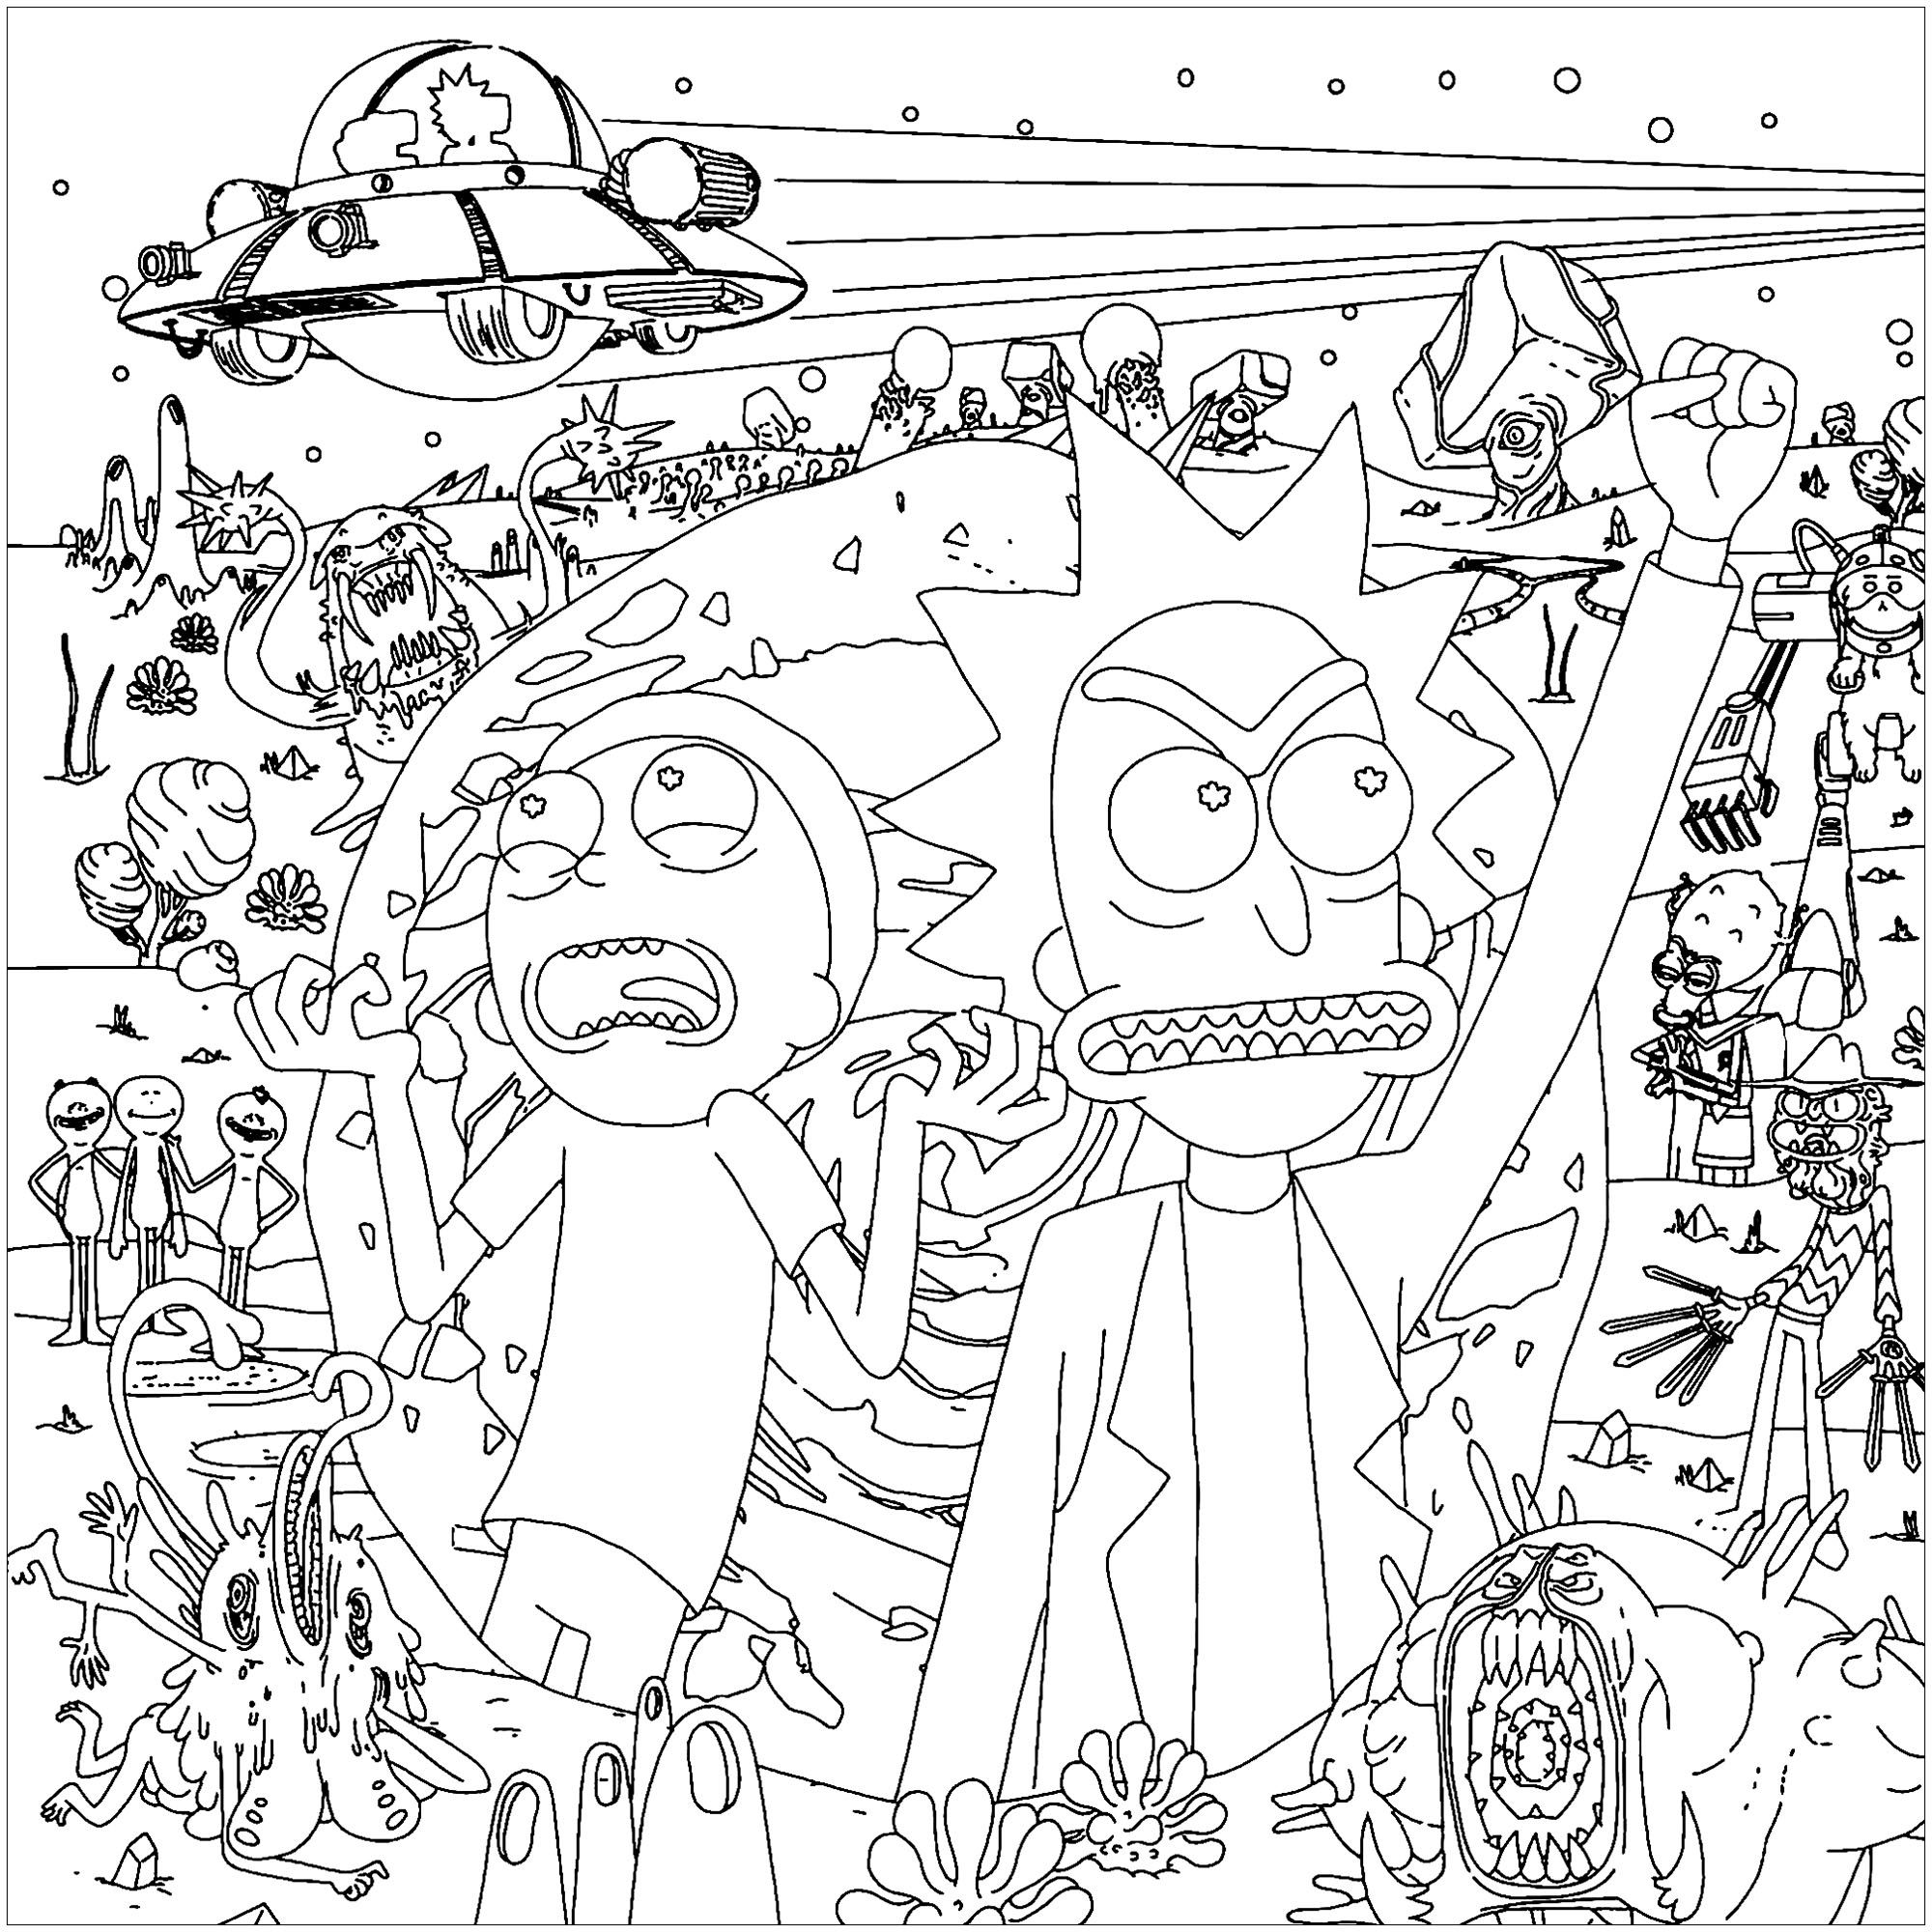 The Silly Scientist And His Grandson Are Faced With Strange Aliens Coloring Books Rick And Morty Drawing Love Coloring Pages